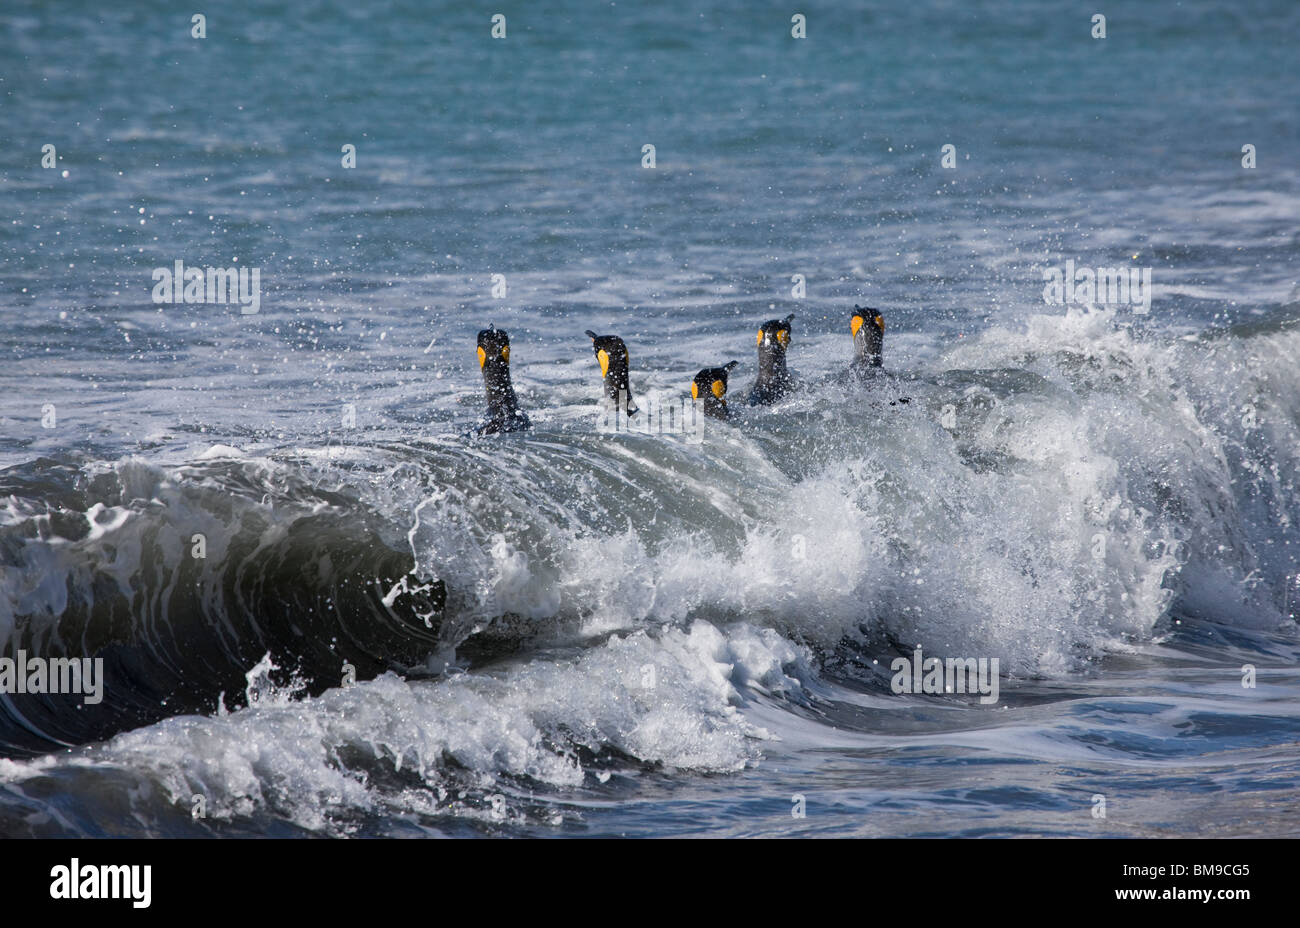 King Penguins Aptenodytes patagonicus yellow heads out of water swimming in line on top of a curling ocean wave - Stock Image